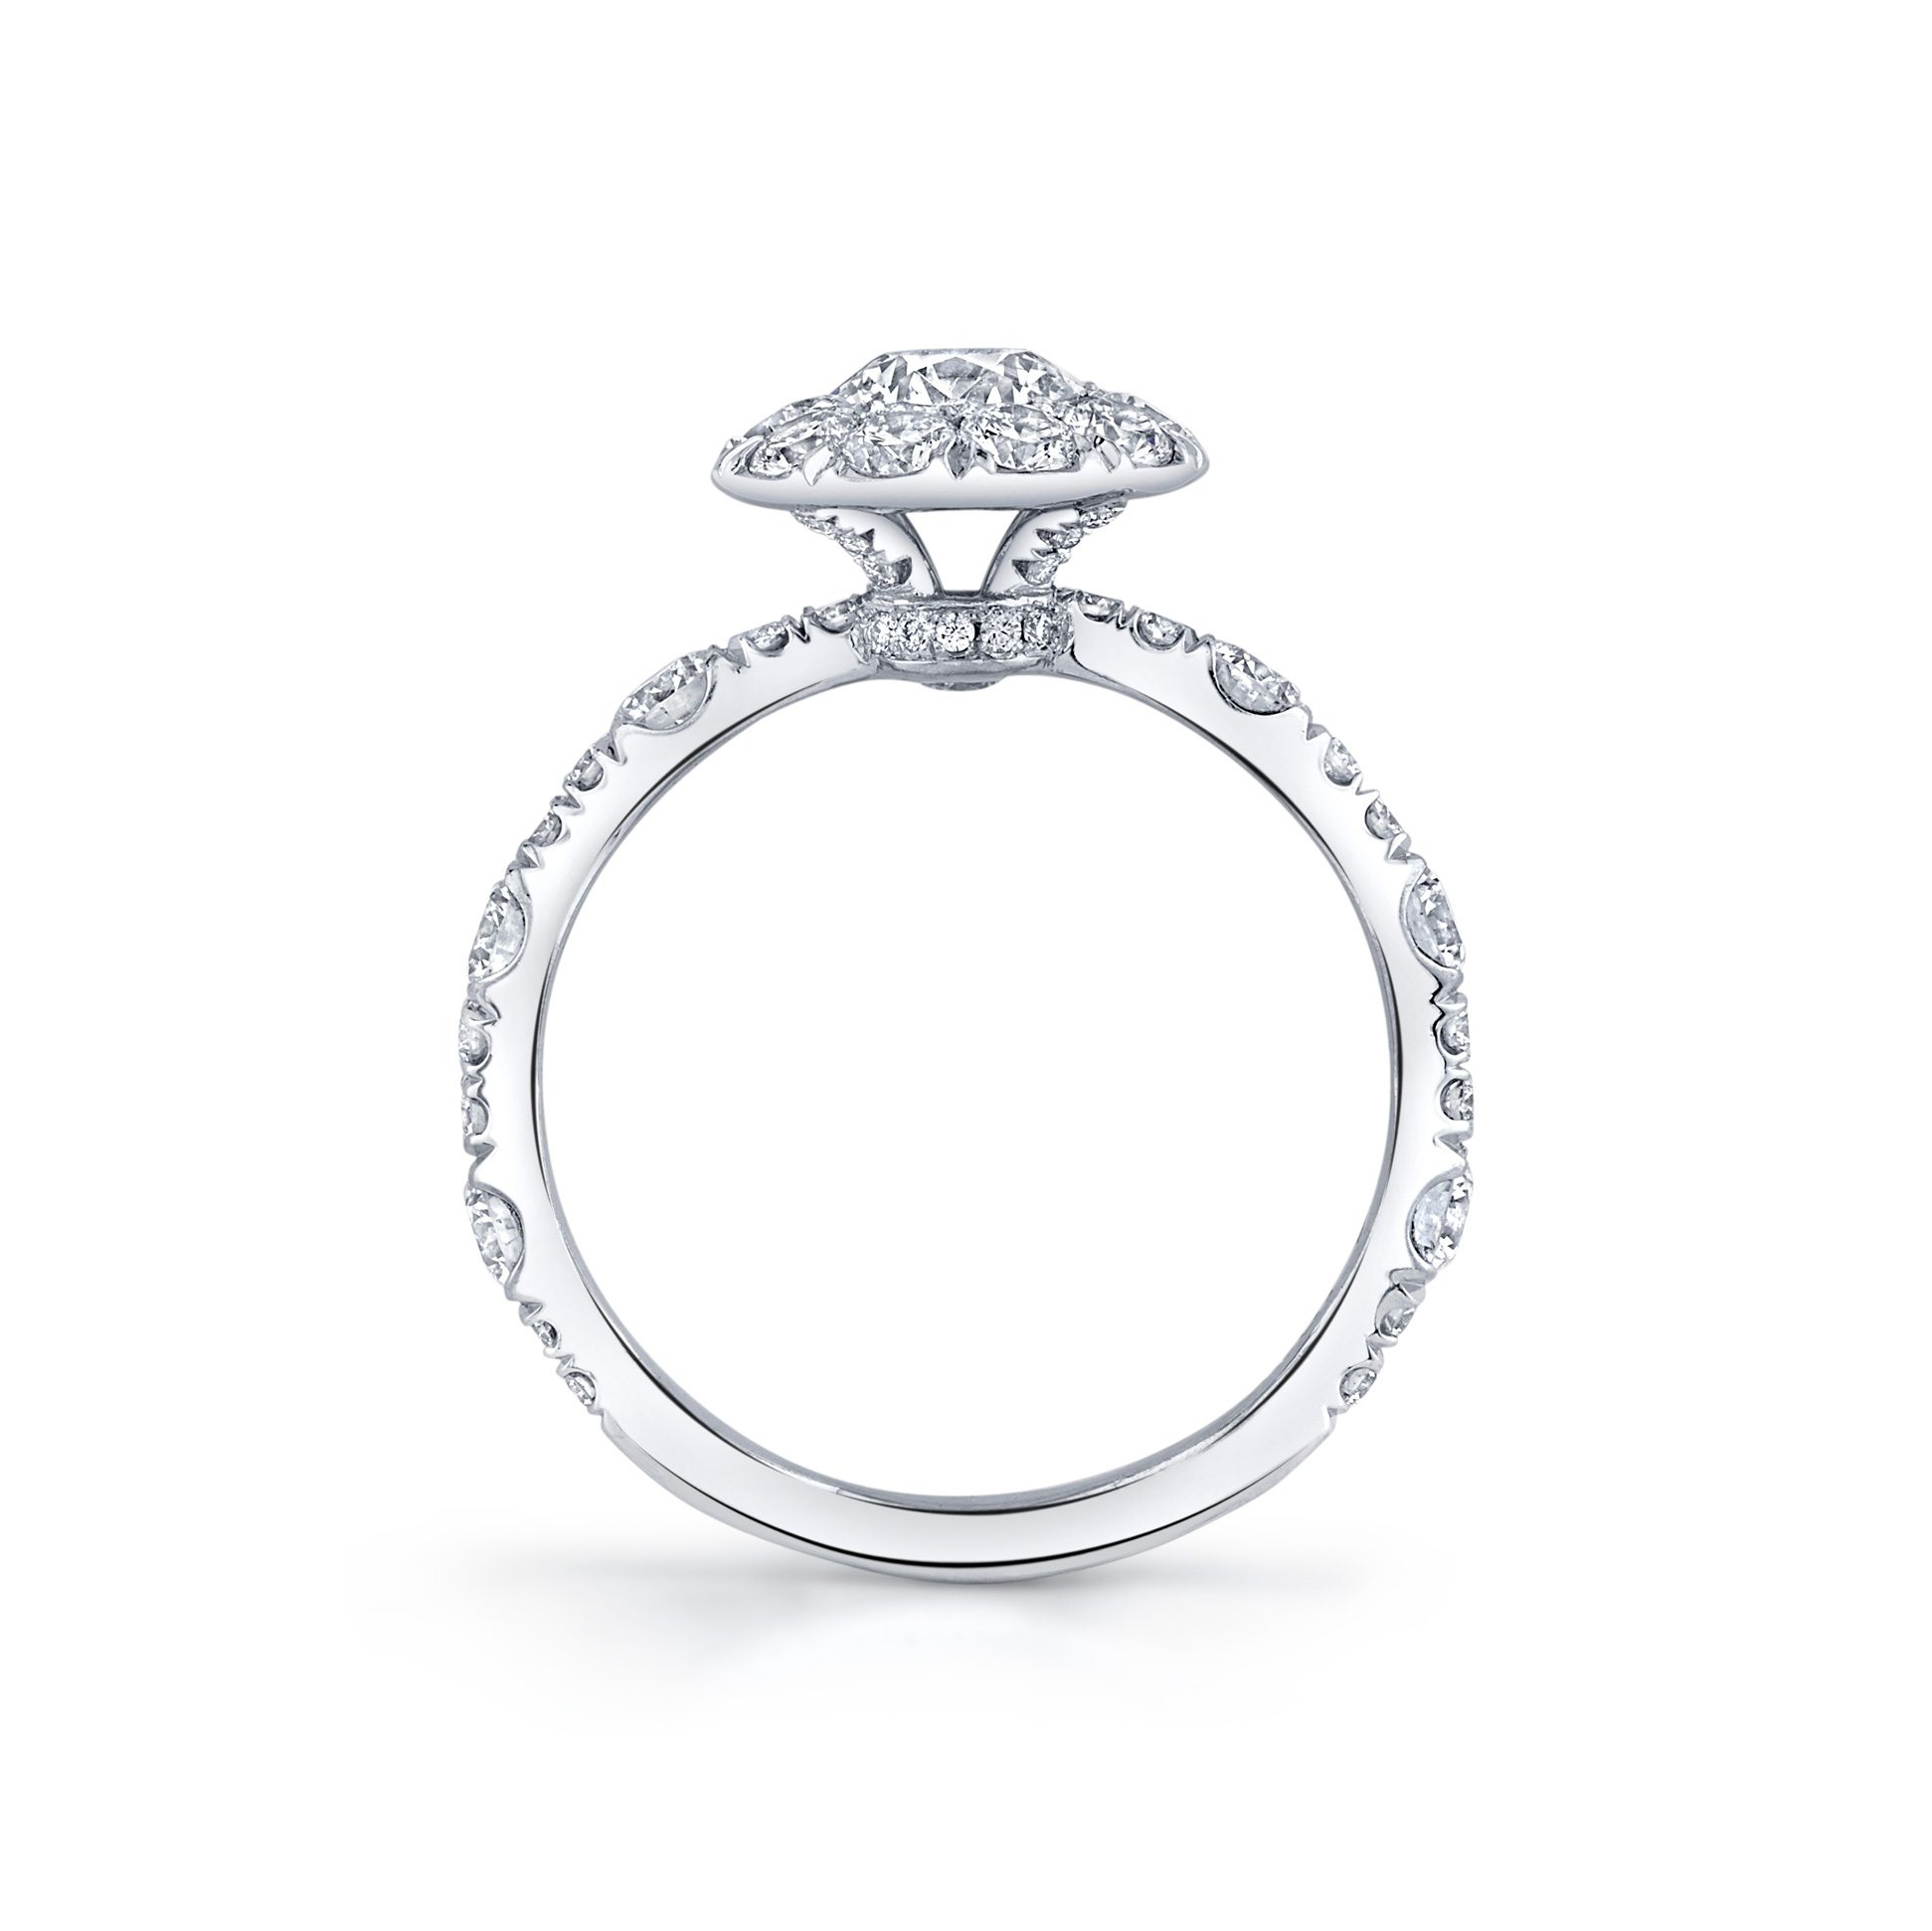 Yvonne Floating Round Brilliant Seamless Solitaire® Engagement Ring 18k White Gold Standing View by Oui by Jean Dousset